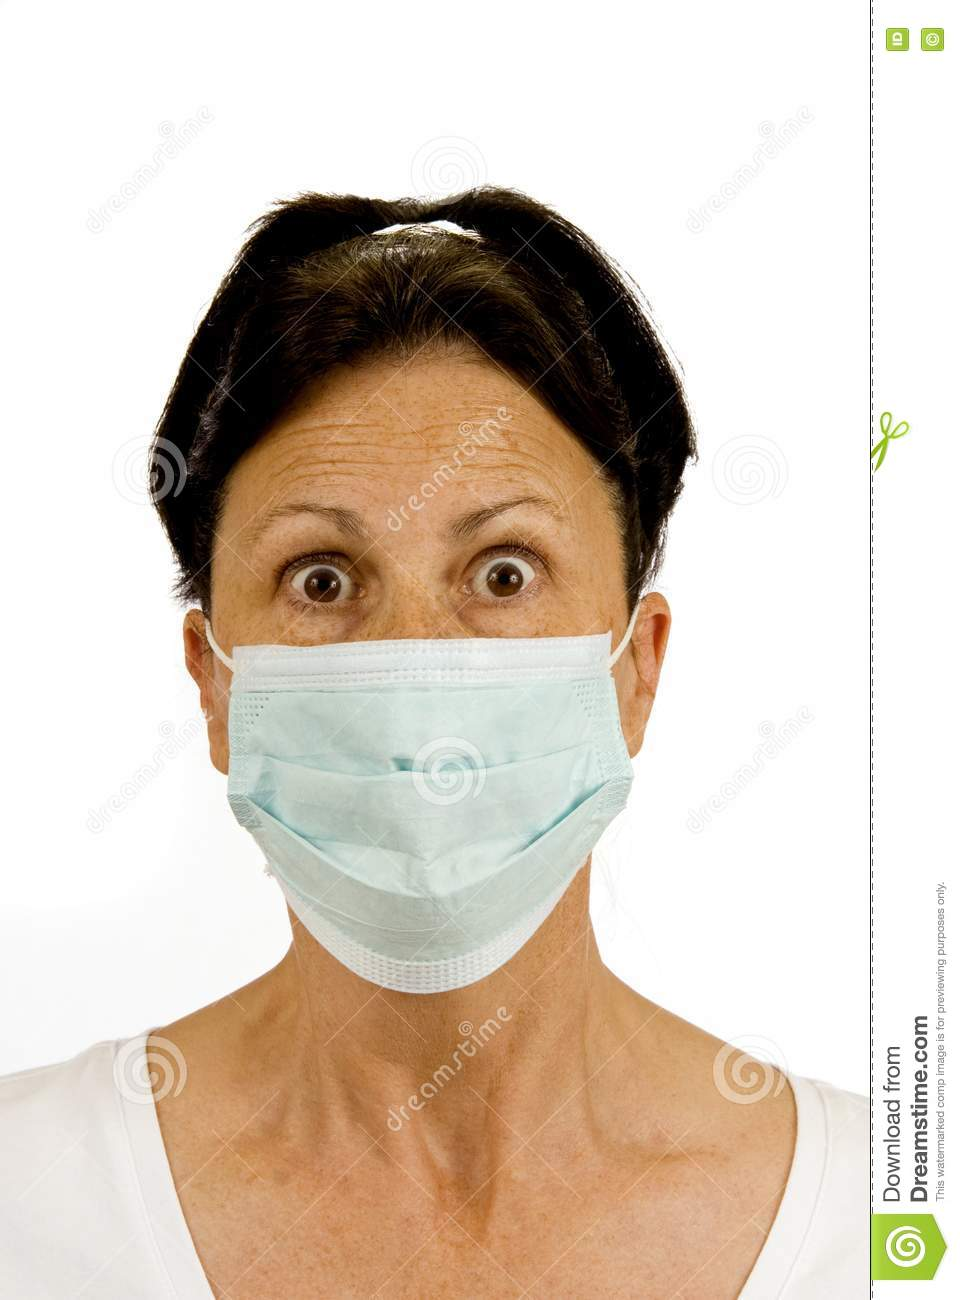 Surgical mask is used to protect from germs this woman is fearful